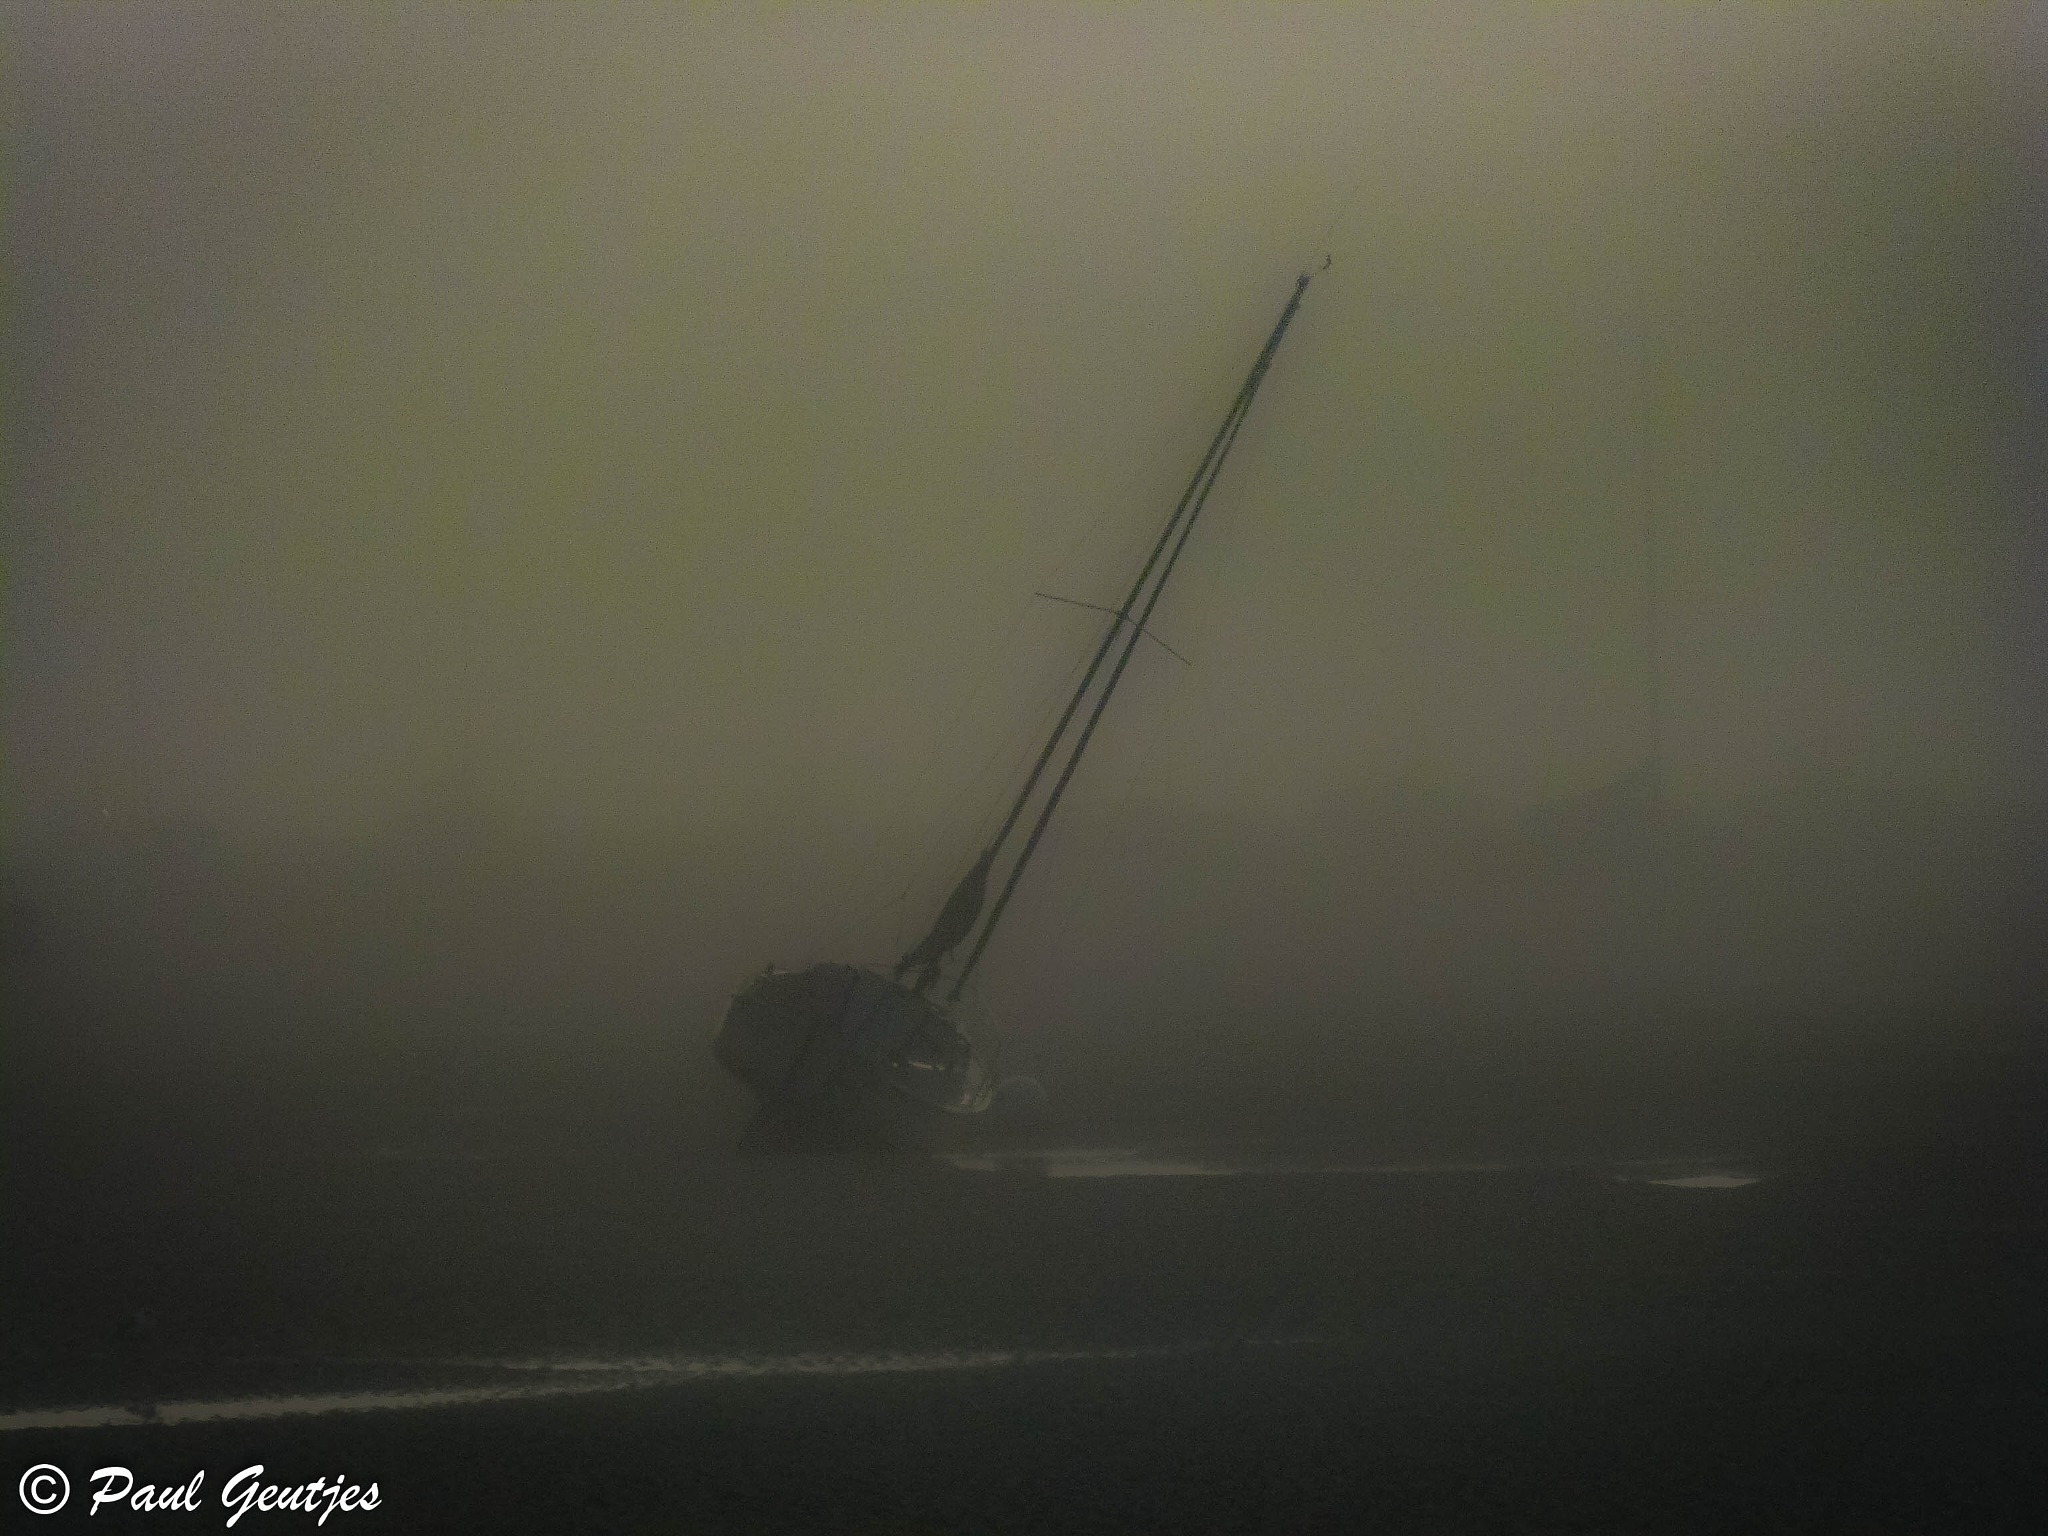 Sailing boats stuck in low tide and in the fog. Serie 4 of 8 by Paul Geutjes